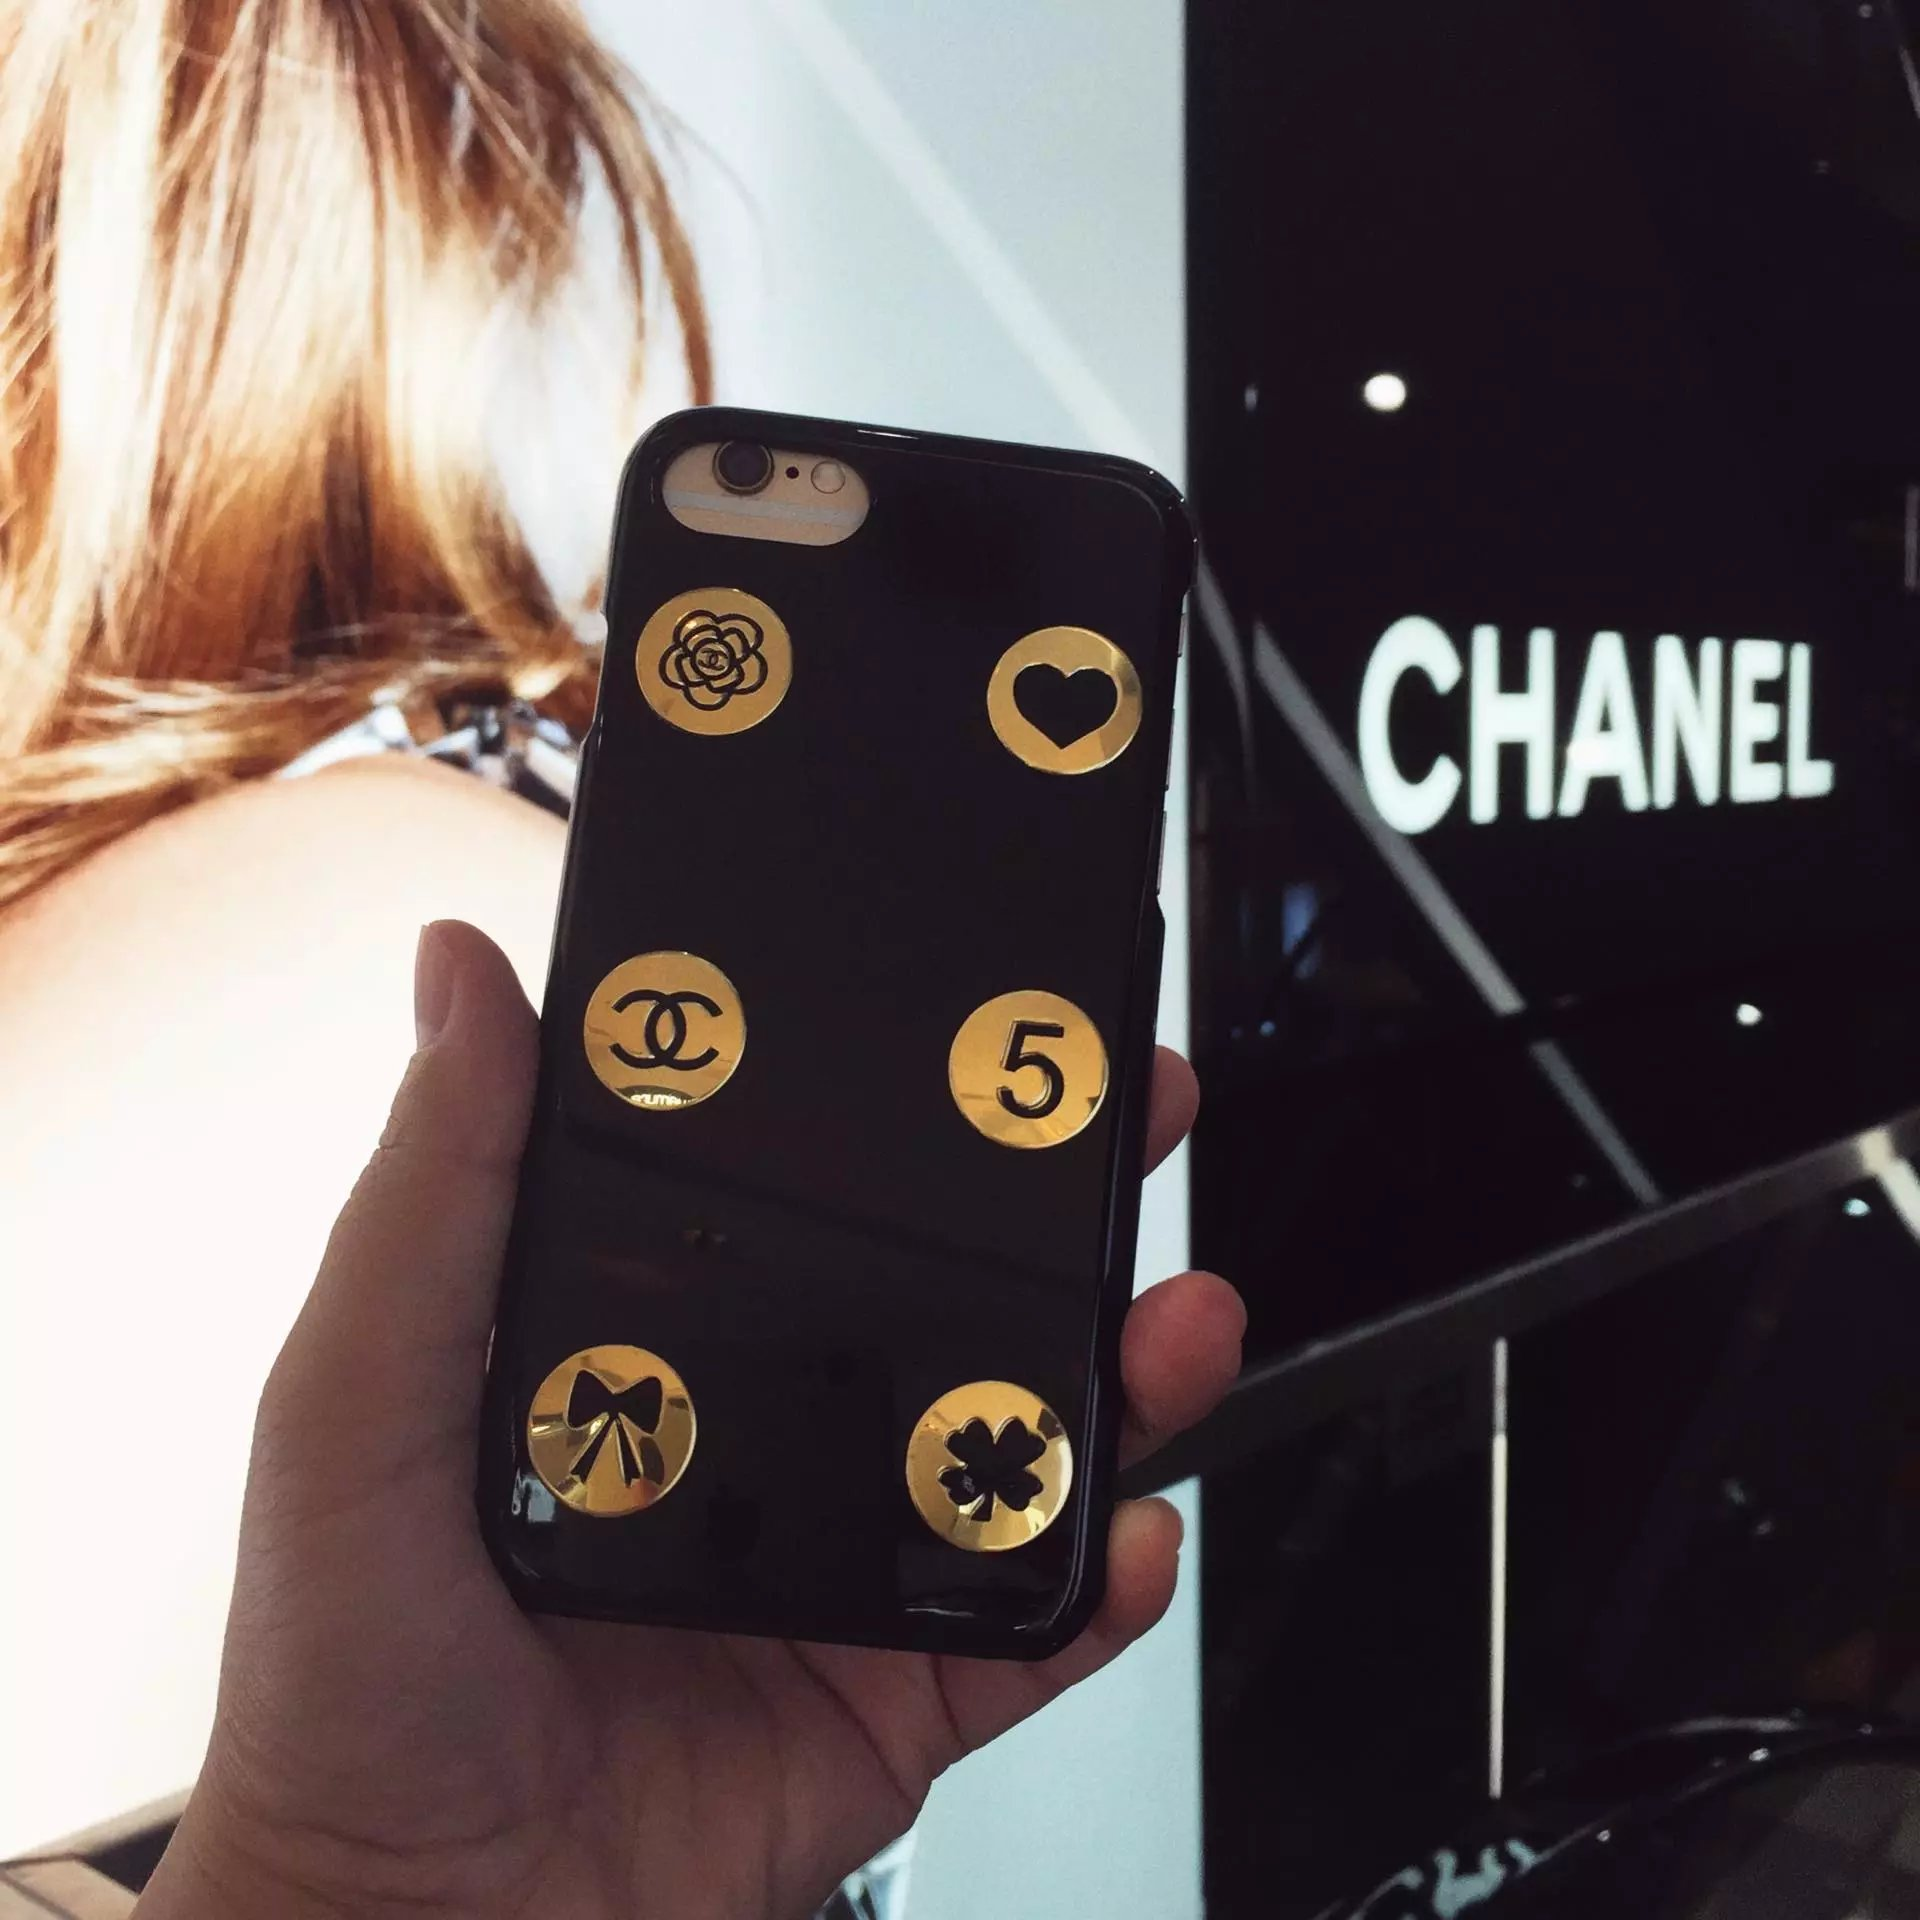 iphone 6s Plus covers designer best selling iphone 6s Plus case fashion iphone6s plus case design your cell phone case hot iphone 6s cases tory burch iphone 6s case iphone 6s full cover iphone 6 designer cases plus